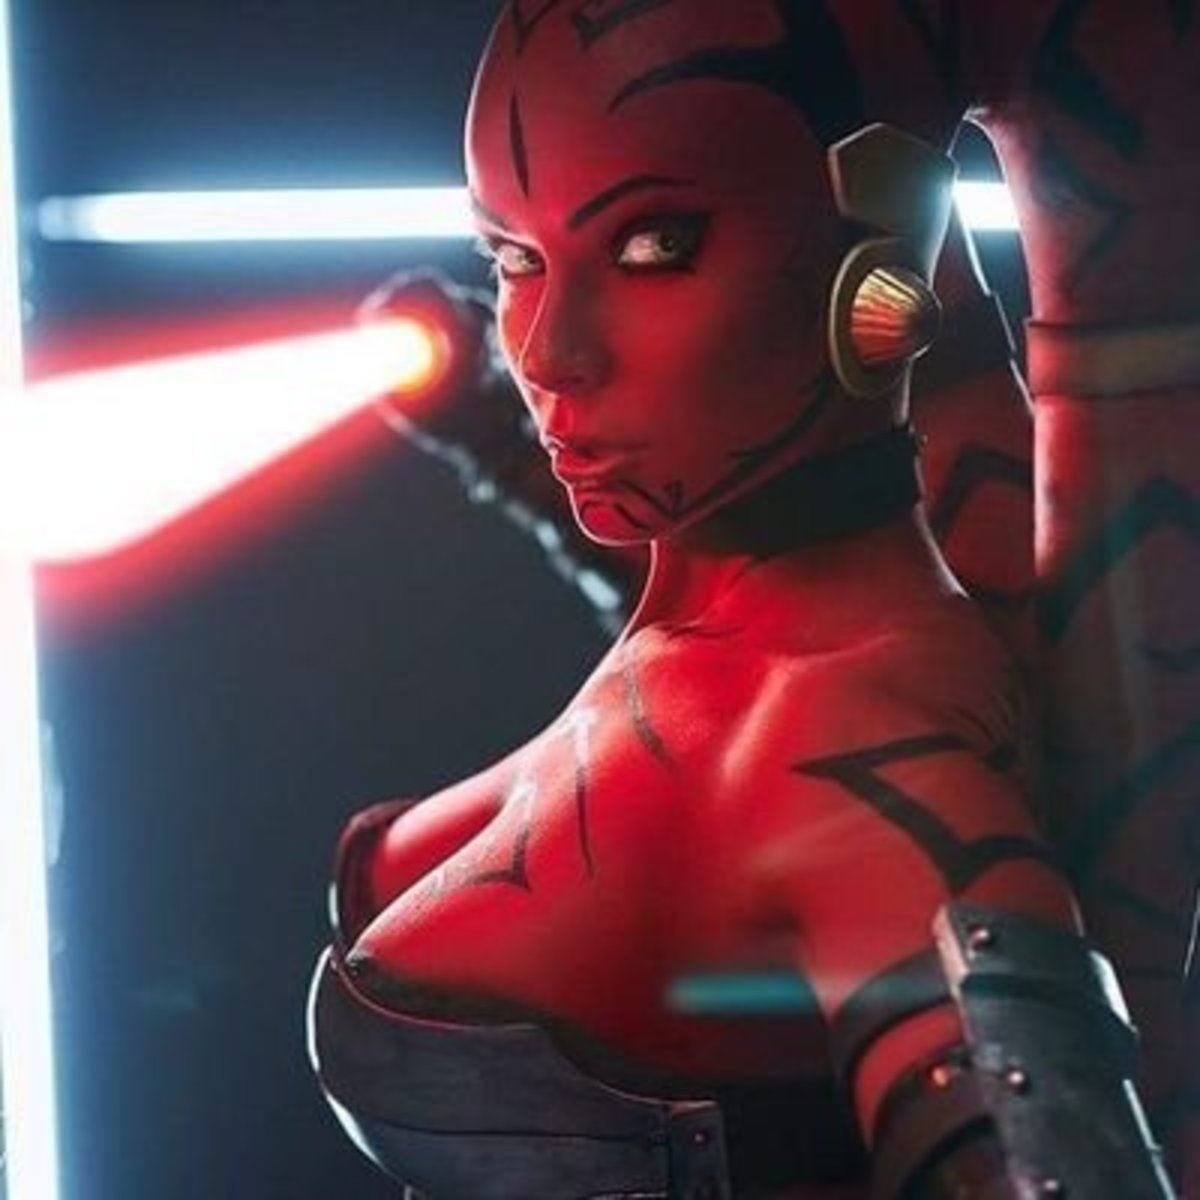 darth-talon-the-star-wars-sexiest-sith-lord-of-all-time